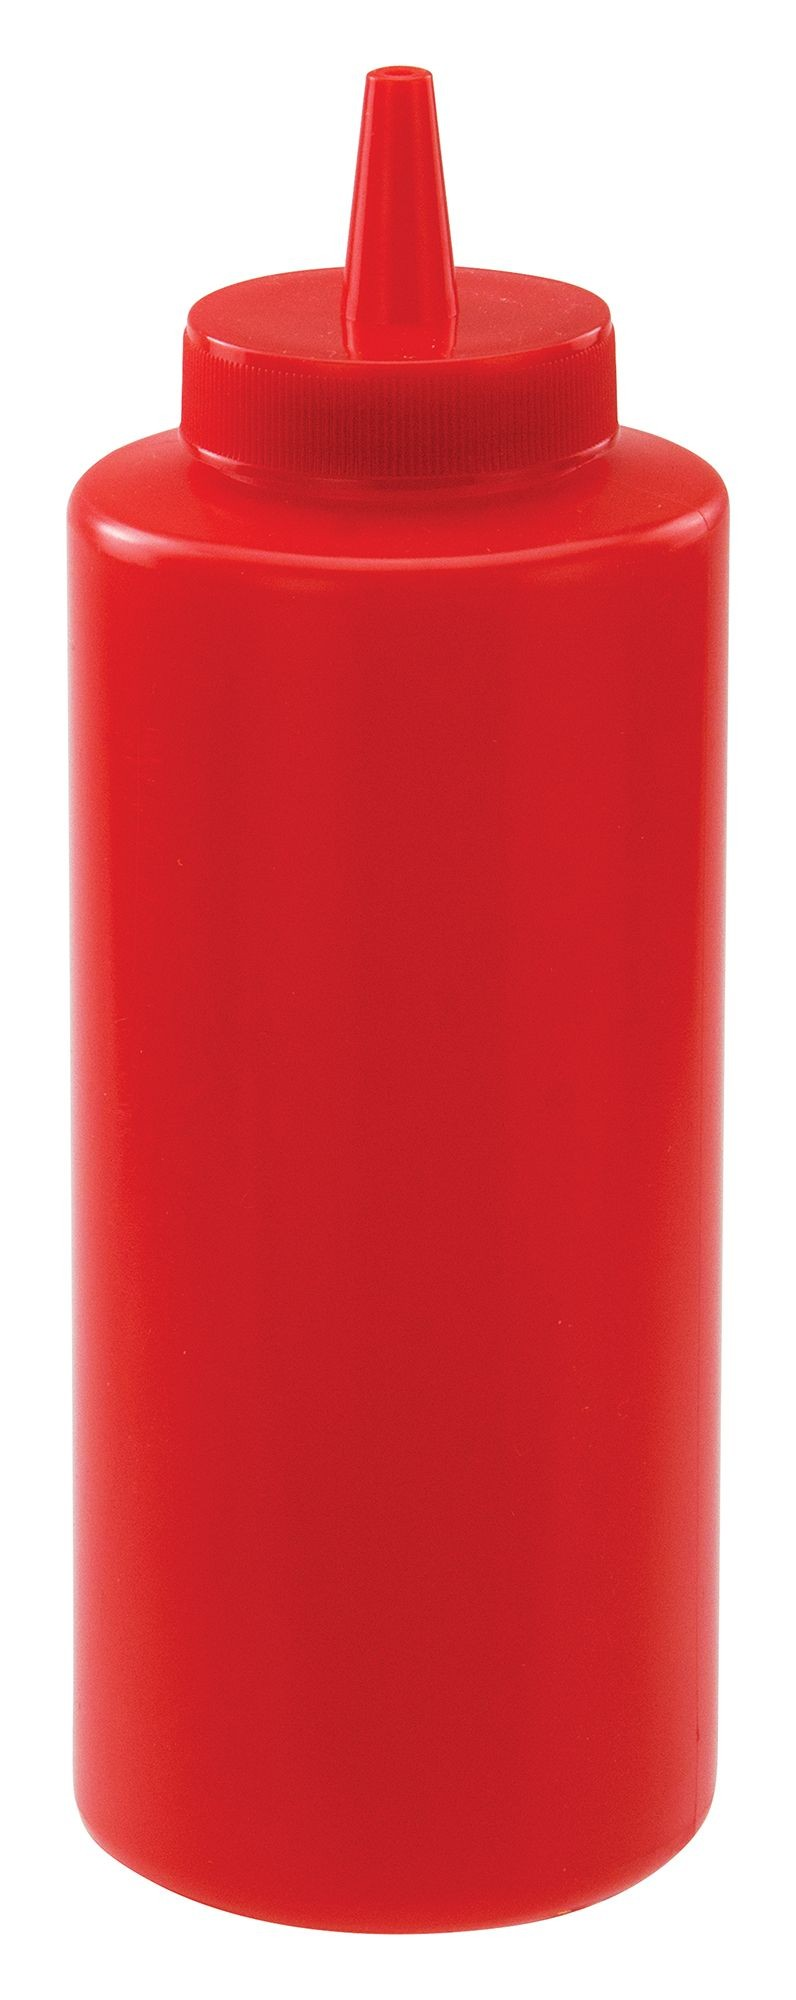 Winco PSB-12R Red Plastic 12 oz. Squeeze Bottle